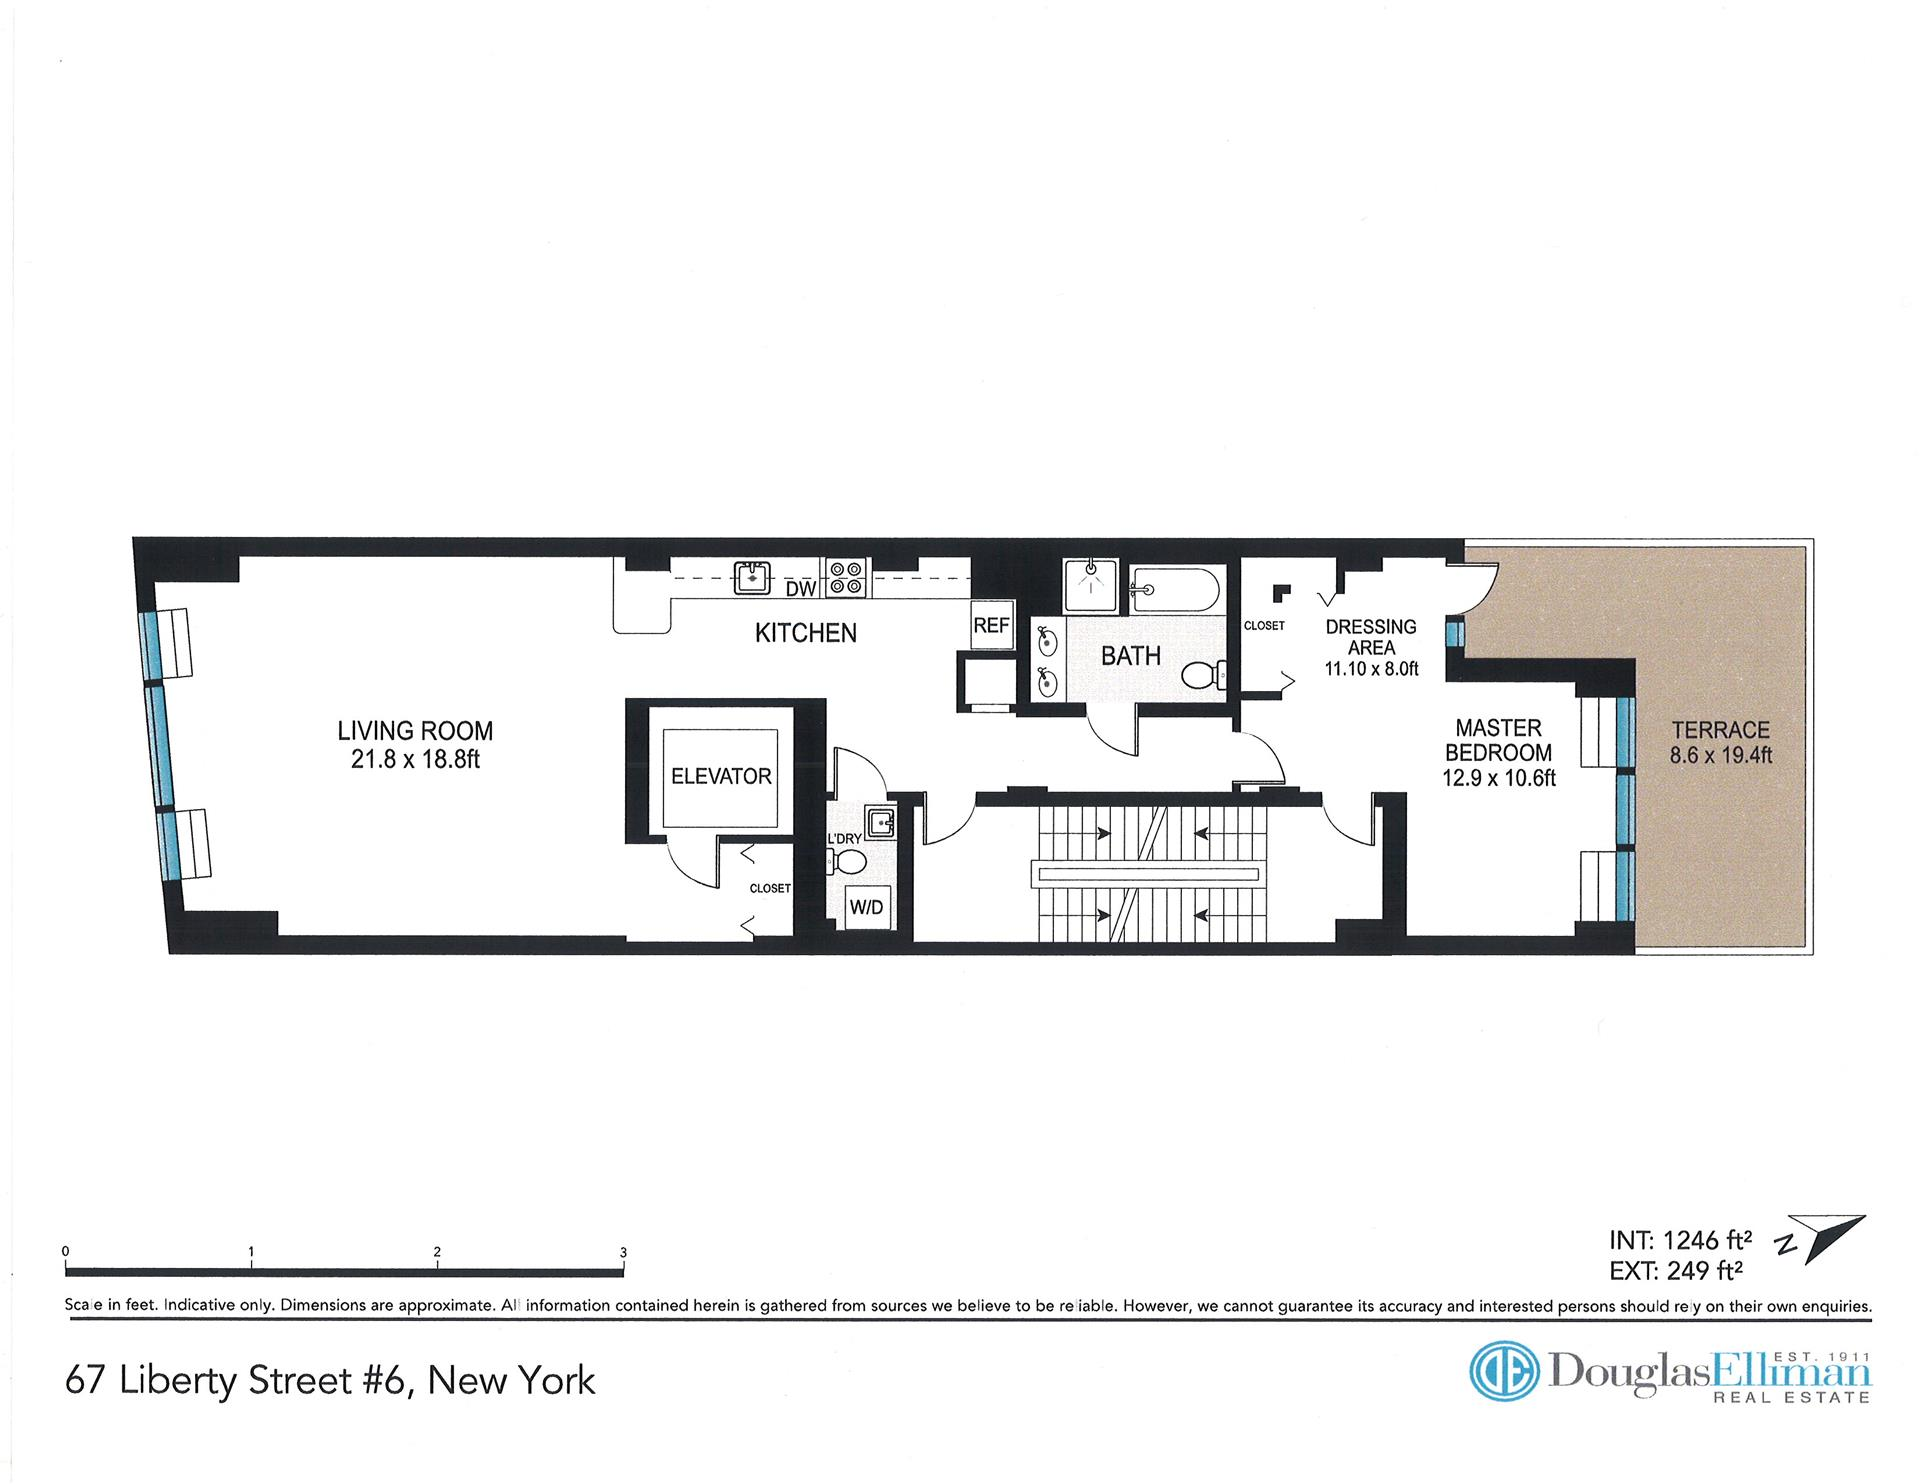 Floor plan of 67 Liberty St, 6 - Financial District, New York